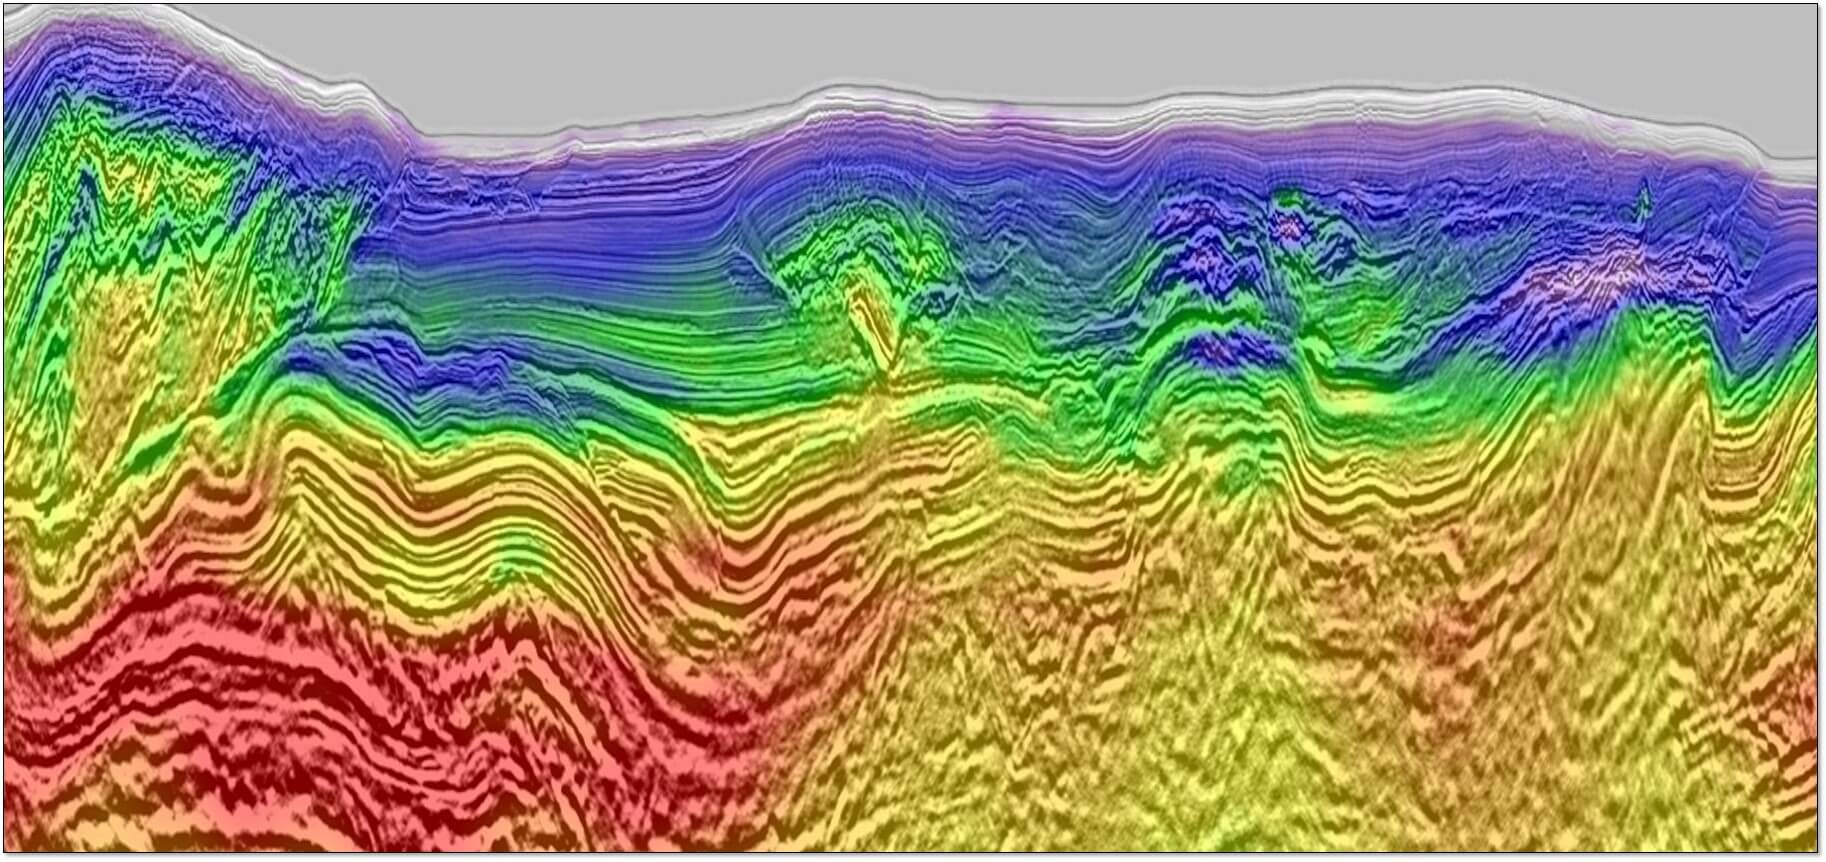 Multi-client seismic data – FWI Encontrado